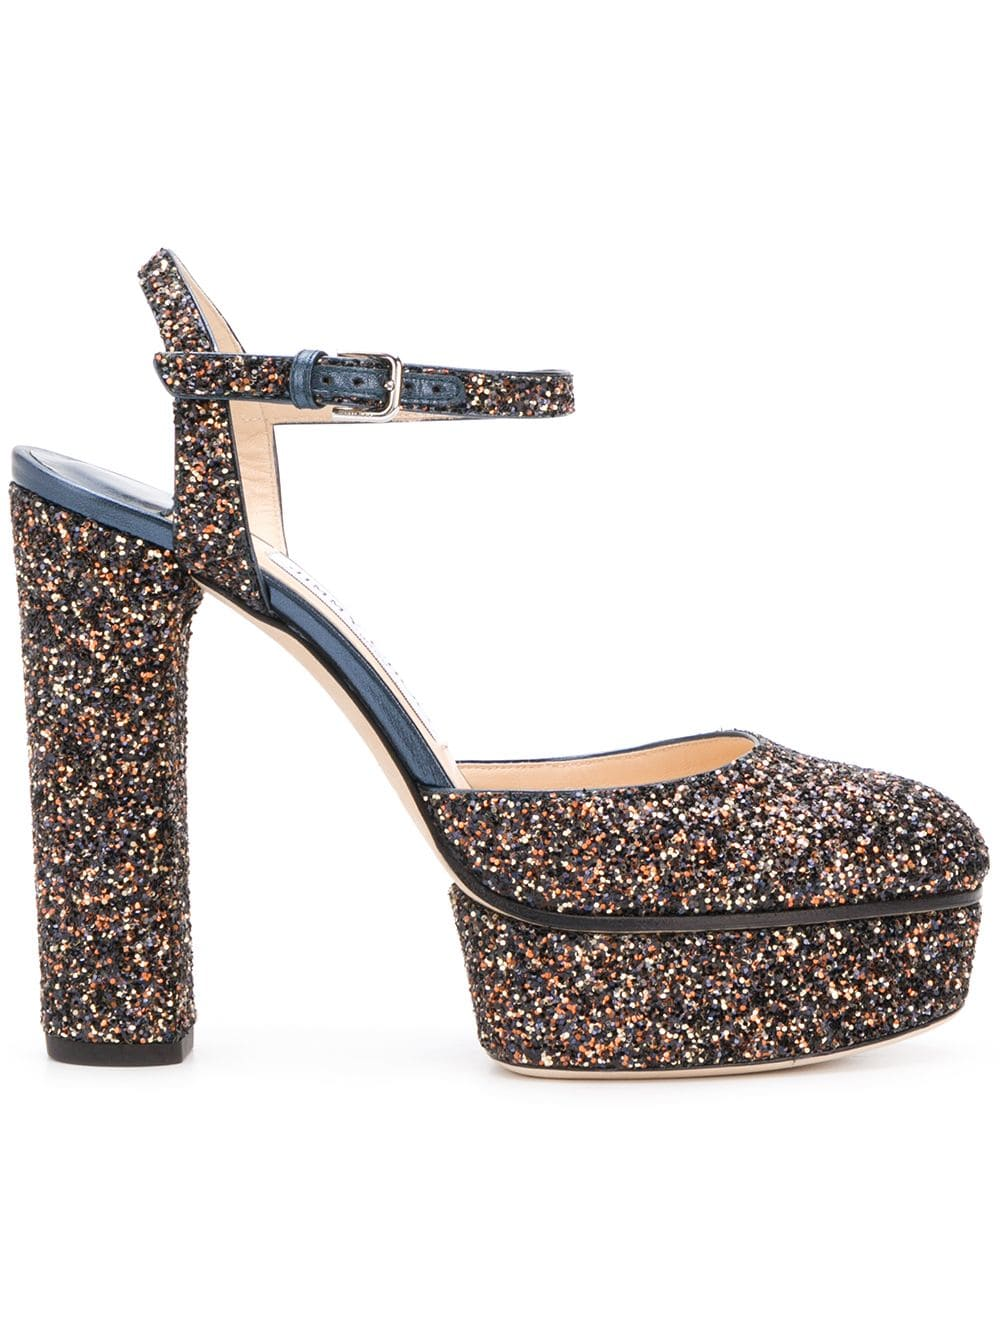 JIMMY CHOO PEACHY 125 AMETHYST MIX TWINKLE GLITTER FABRIC